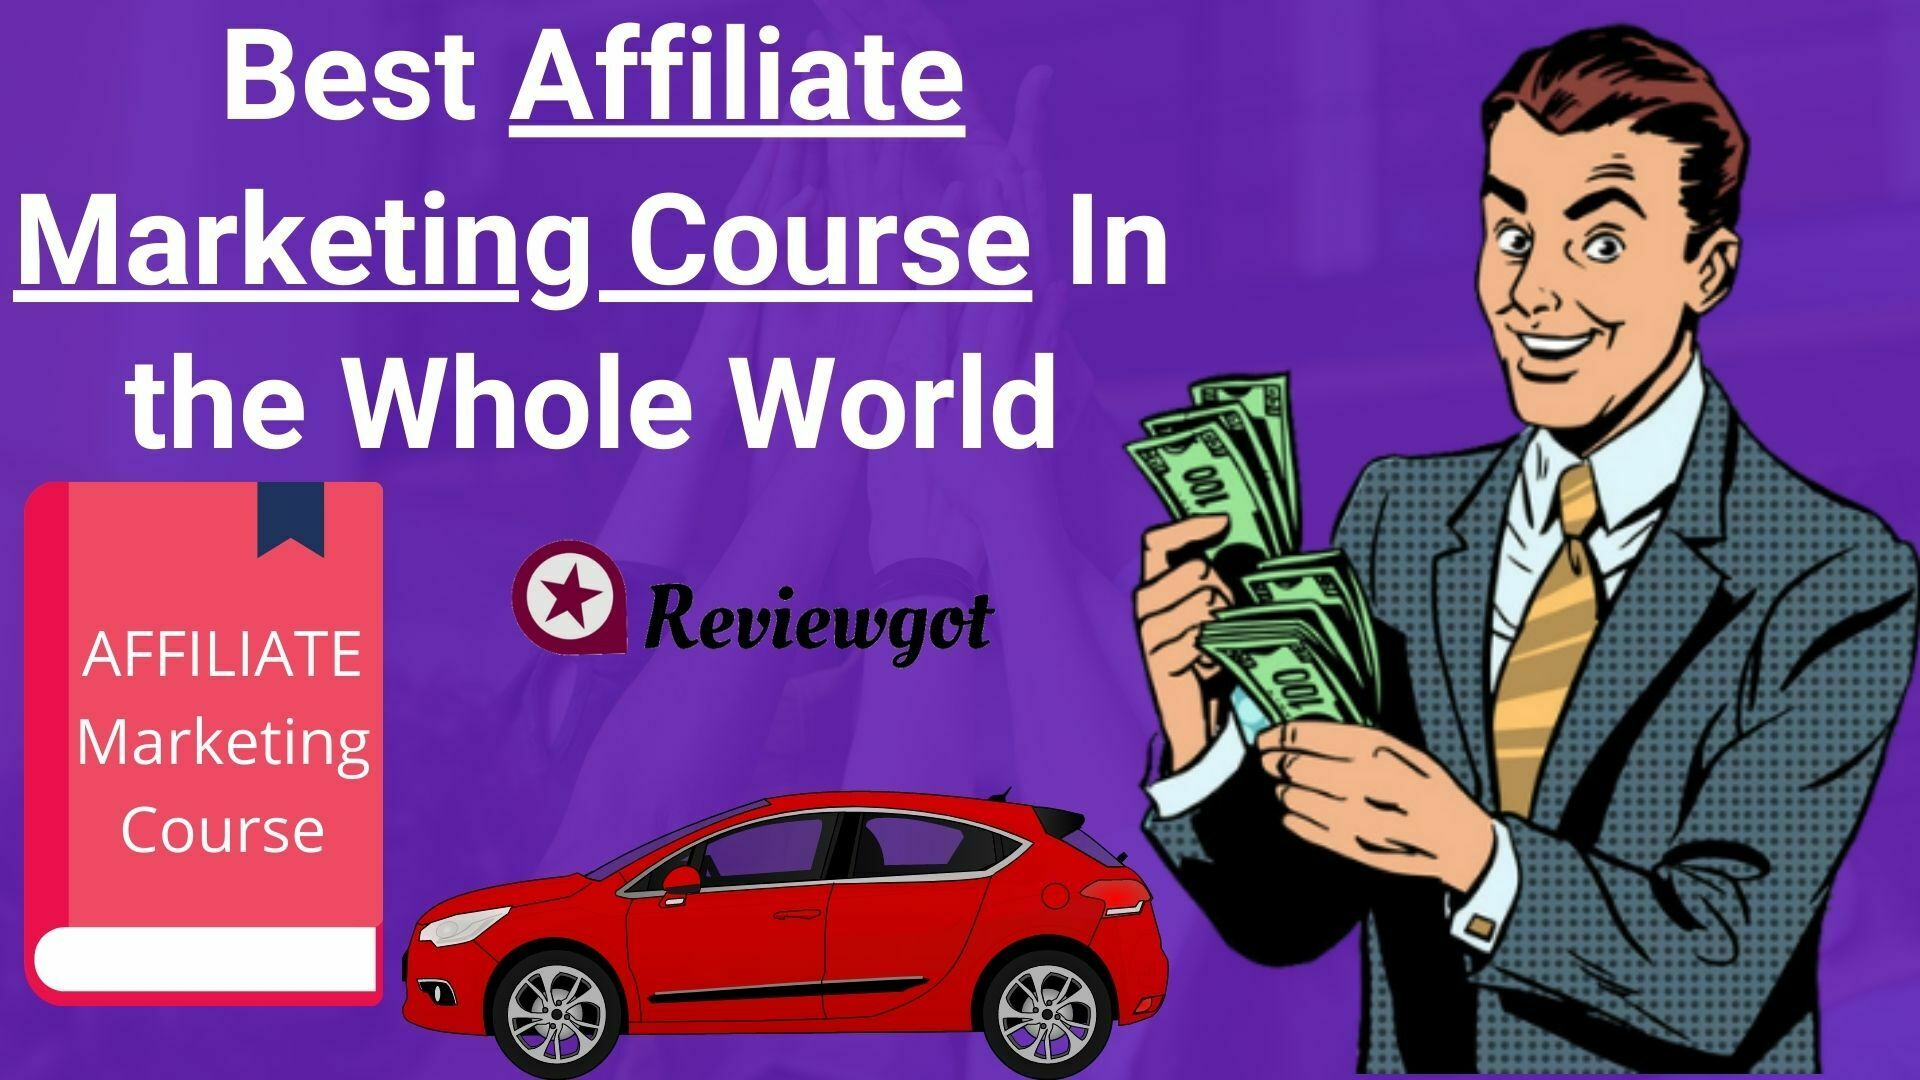 Best Affiliate Marketing Course In the Whole World